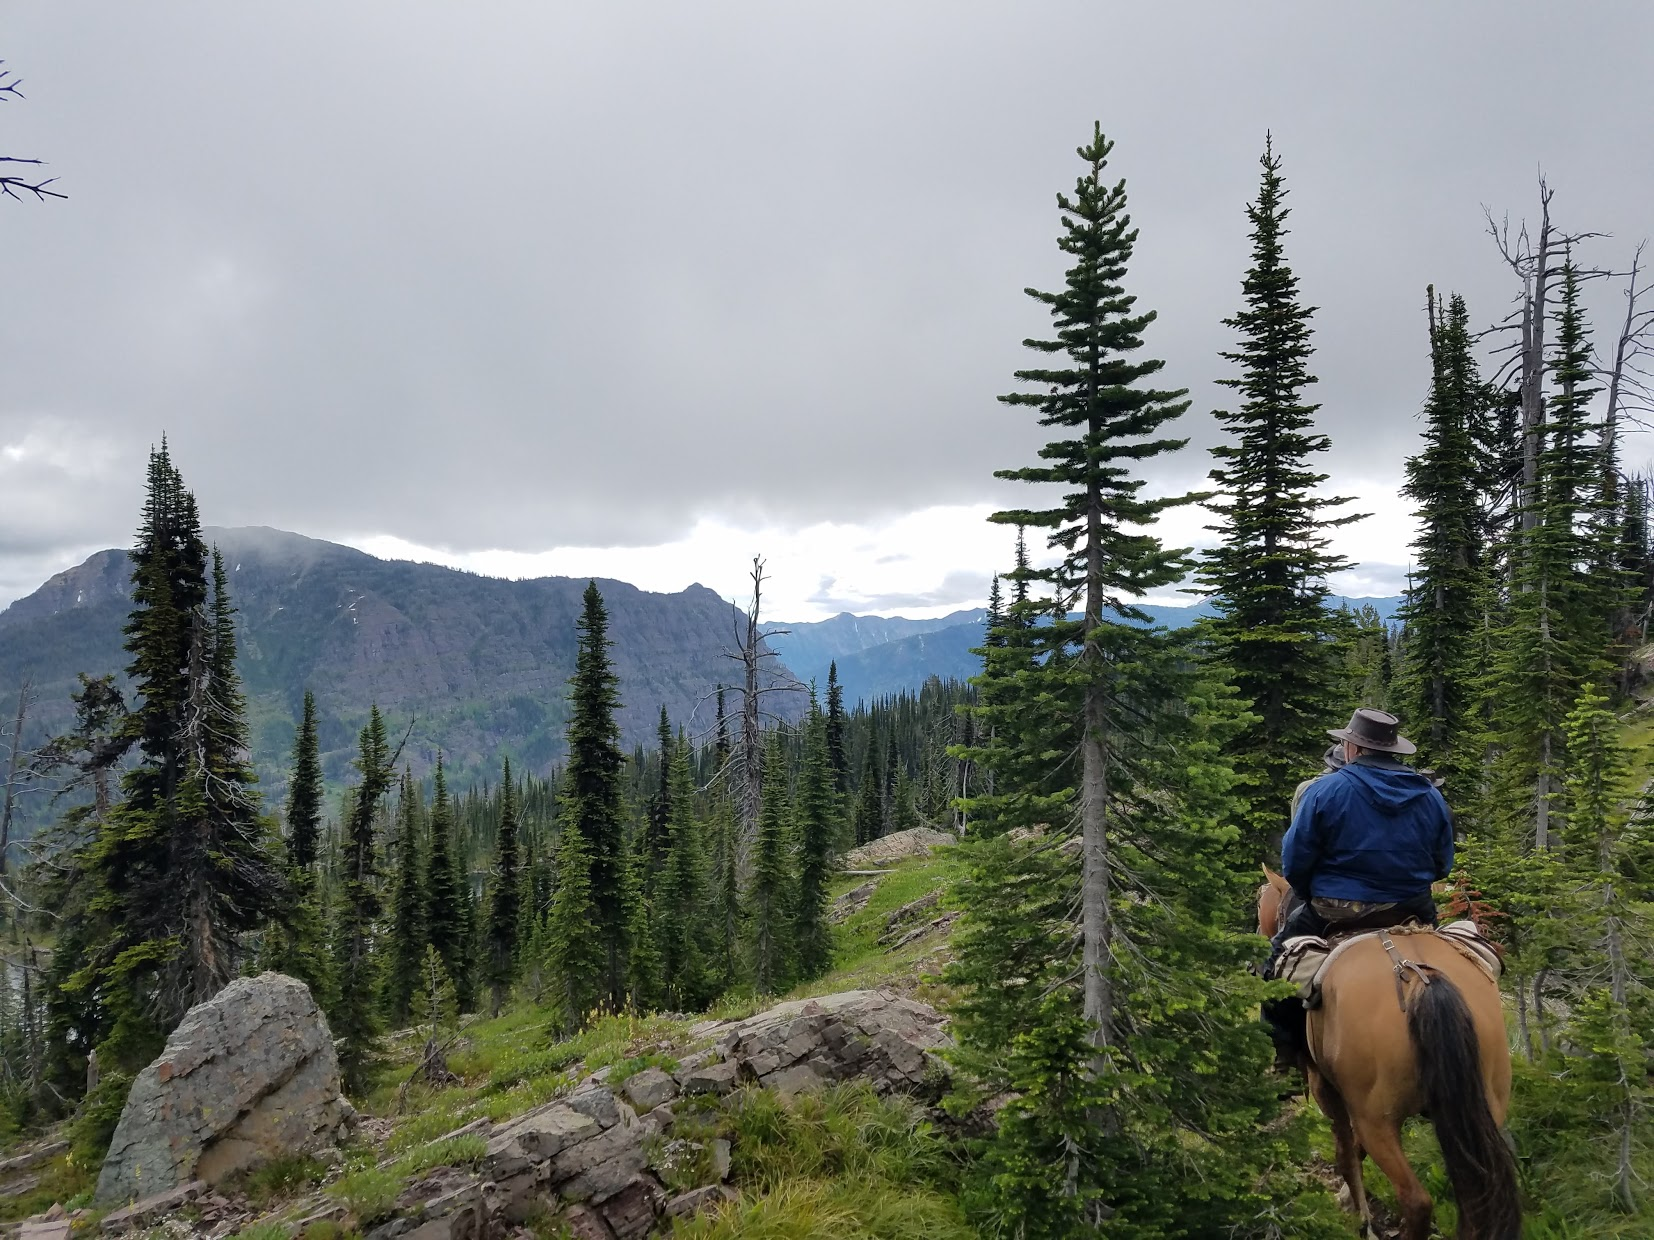 Riding in the Bob Marshall Wilderness